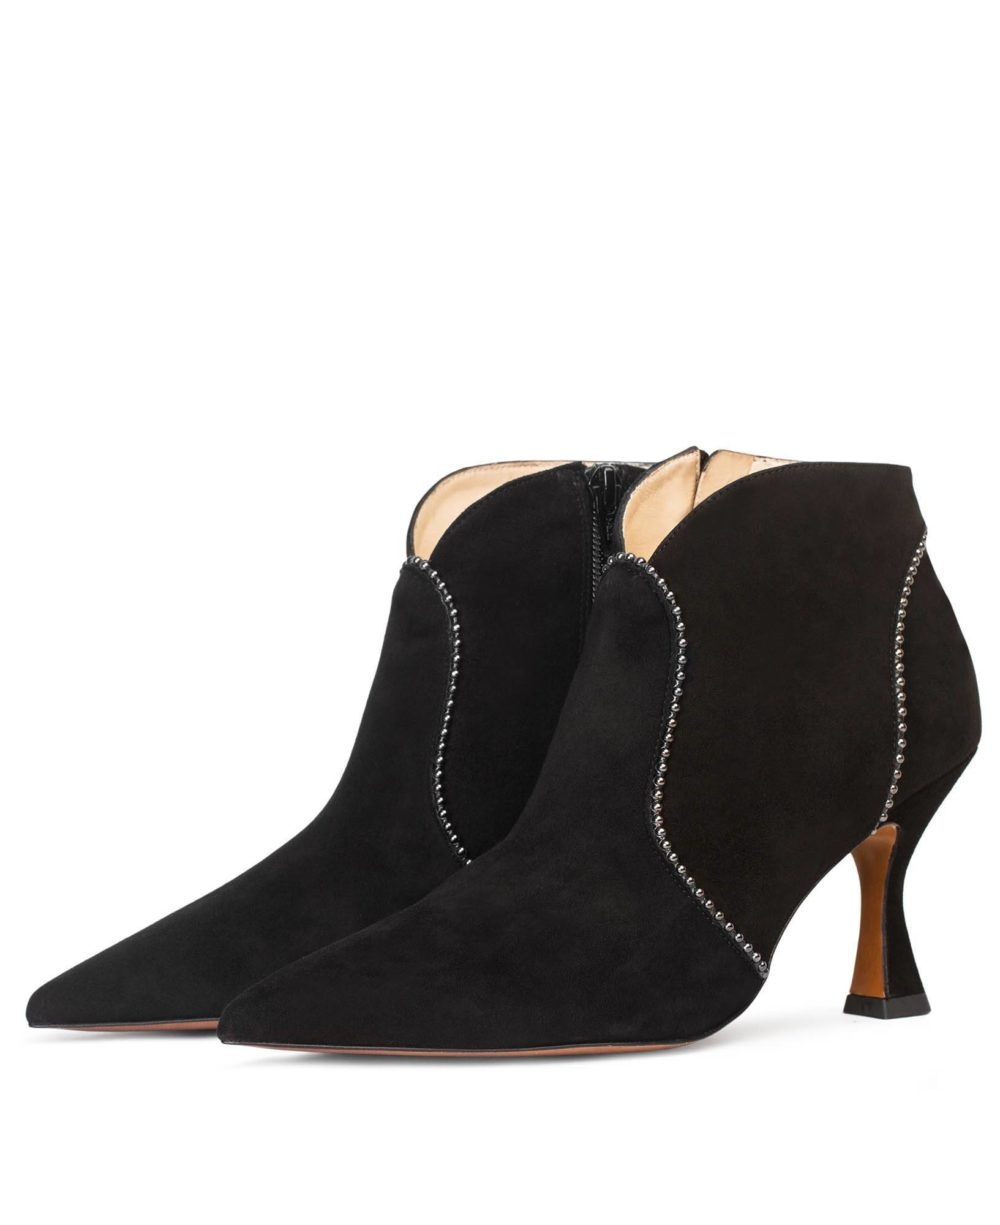 Leather Booties Paco Gil - PP-3816 Black Suede D